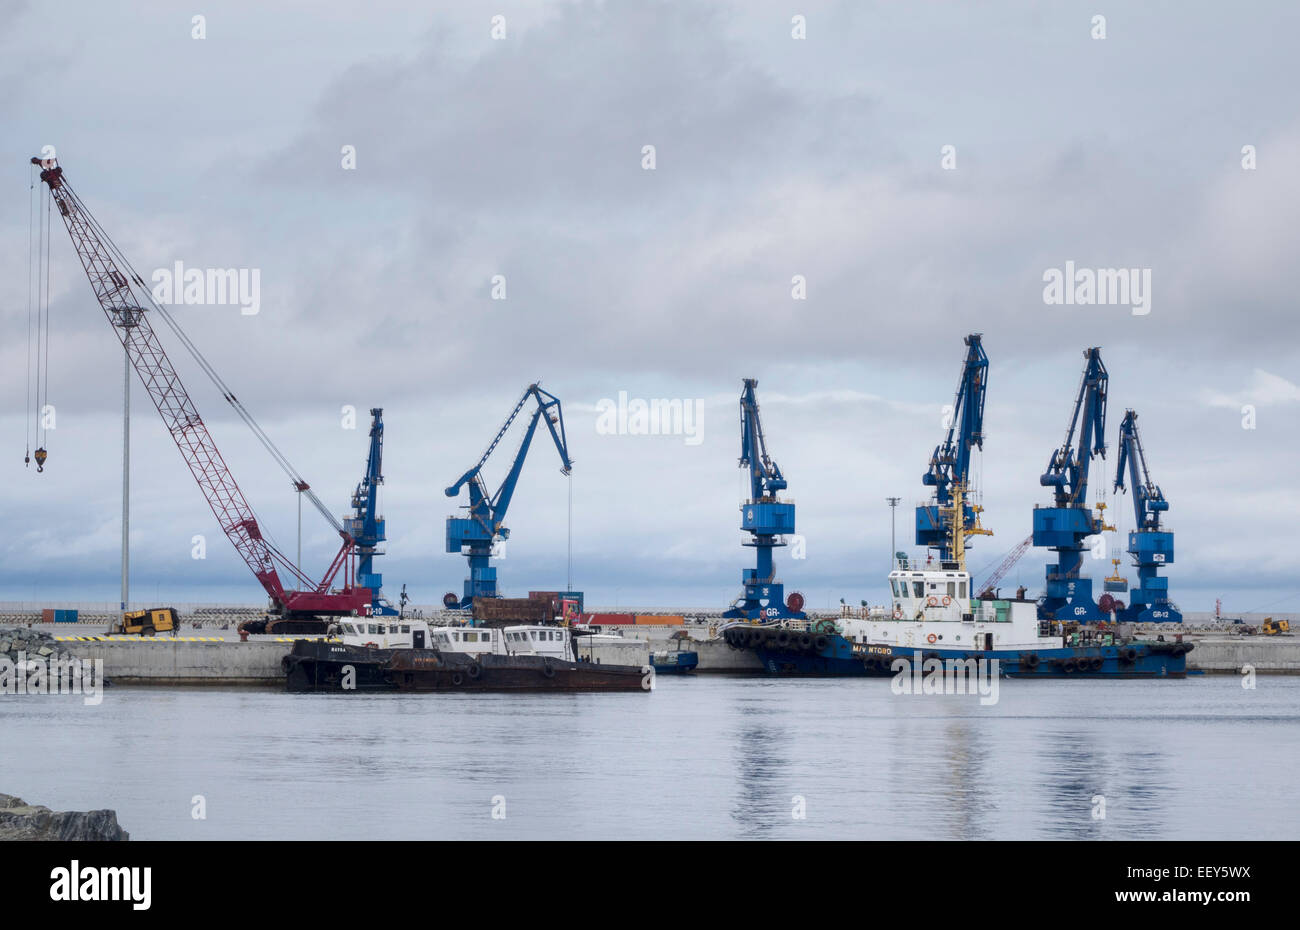 Large cranes at the new port expansion in Bata, Equatorial Guinea, West Africa - Stock Image